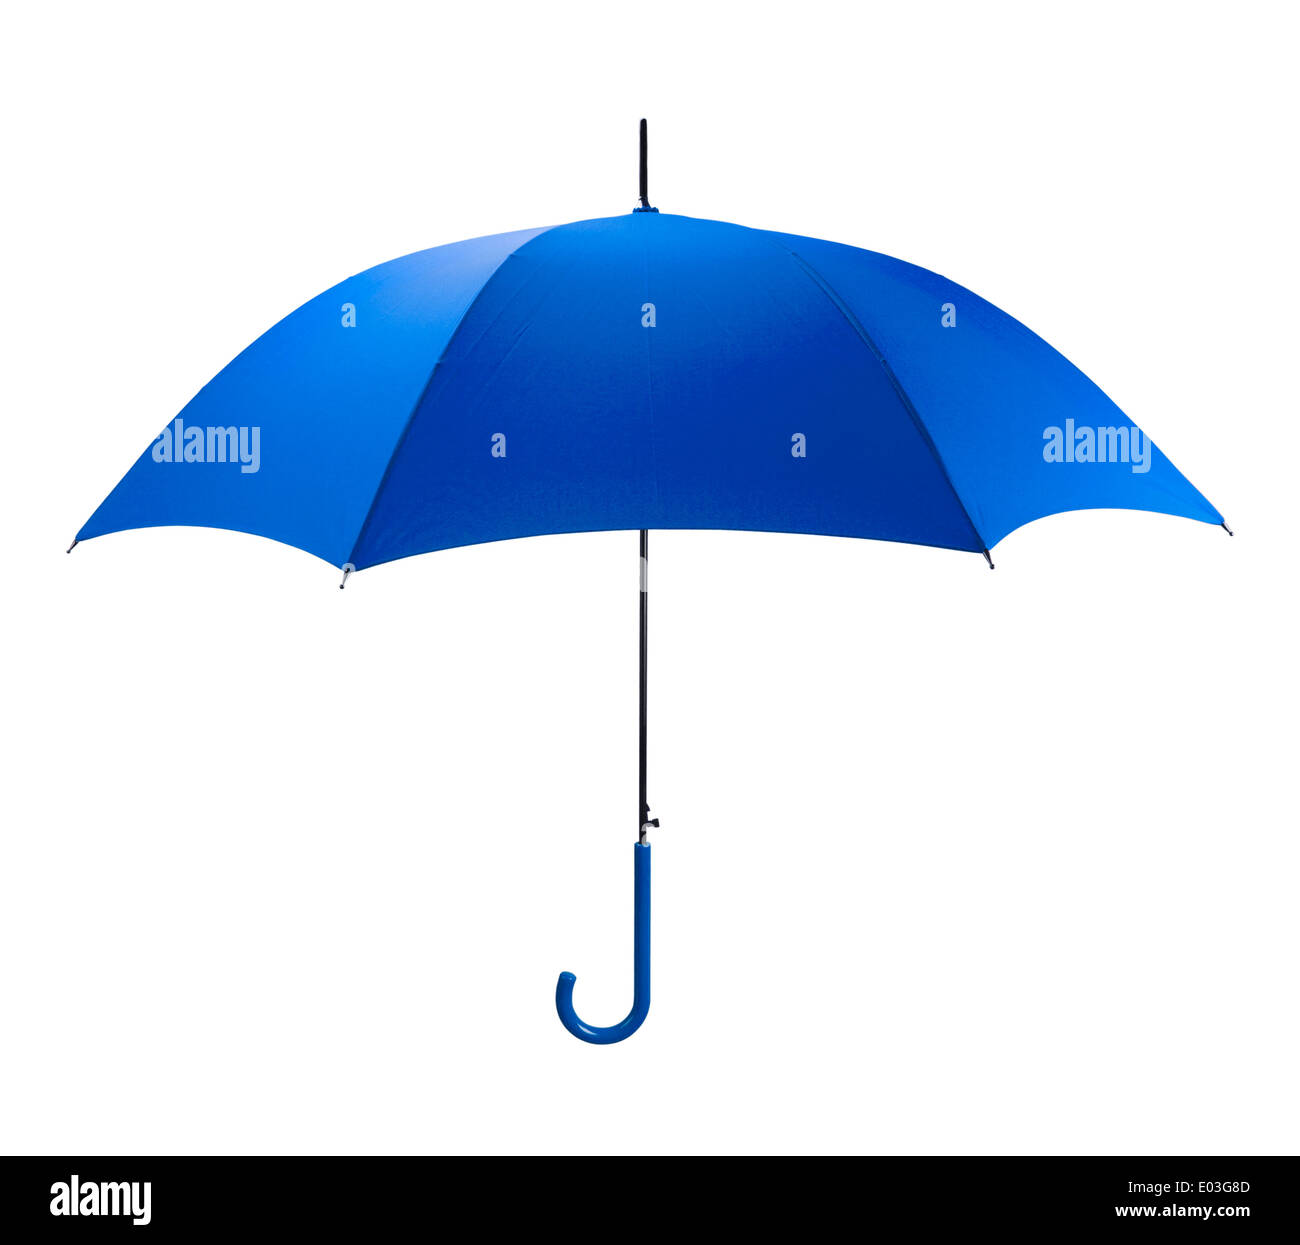 Bright Blue Umbrella Side View Isolated on White Background. - Stock Image